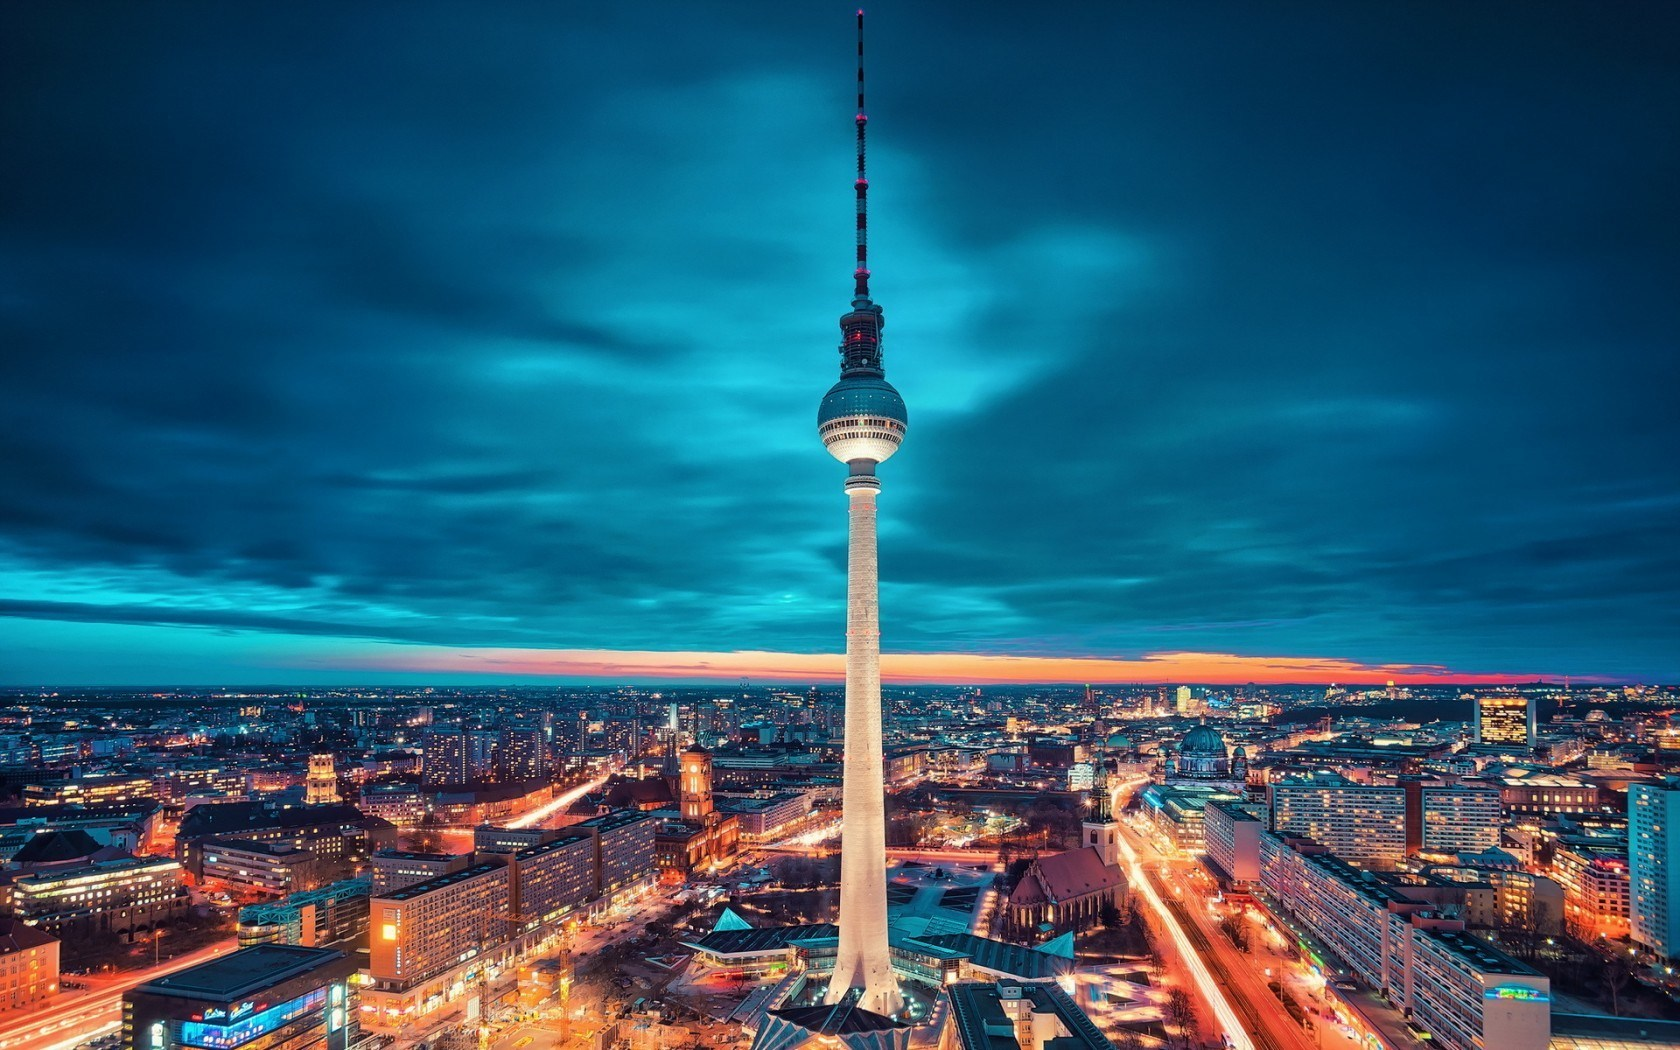 The Fernsehturm, television tower, in Berlin. Built by the German Democratic Republic in 1965-69 the tower remains the tallest structure in Germany.